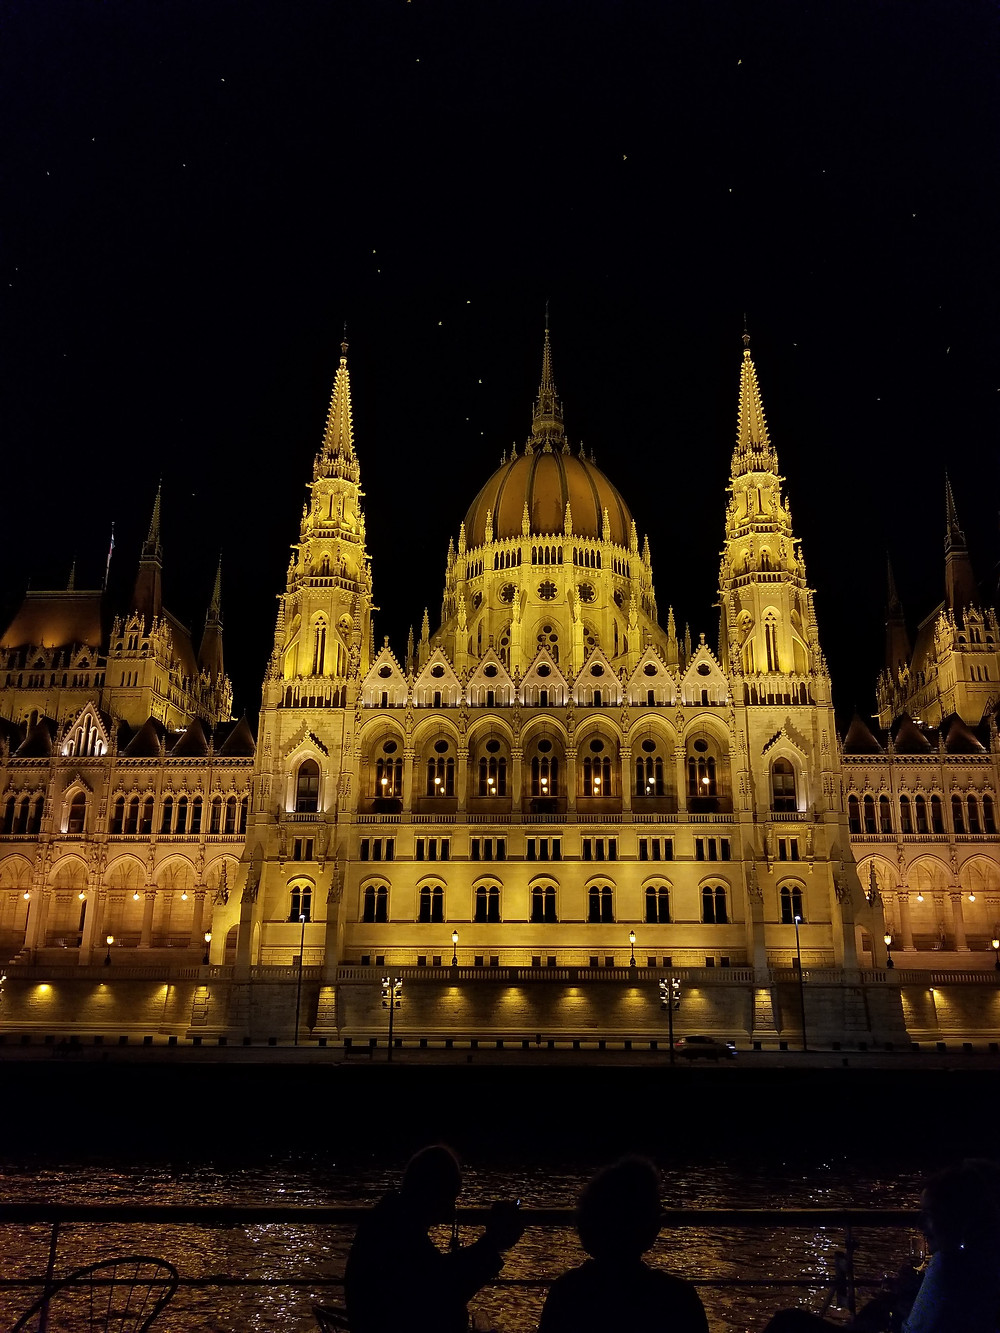 The Budapest Parliament building lit up at night from the Danube River.